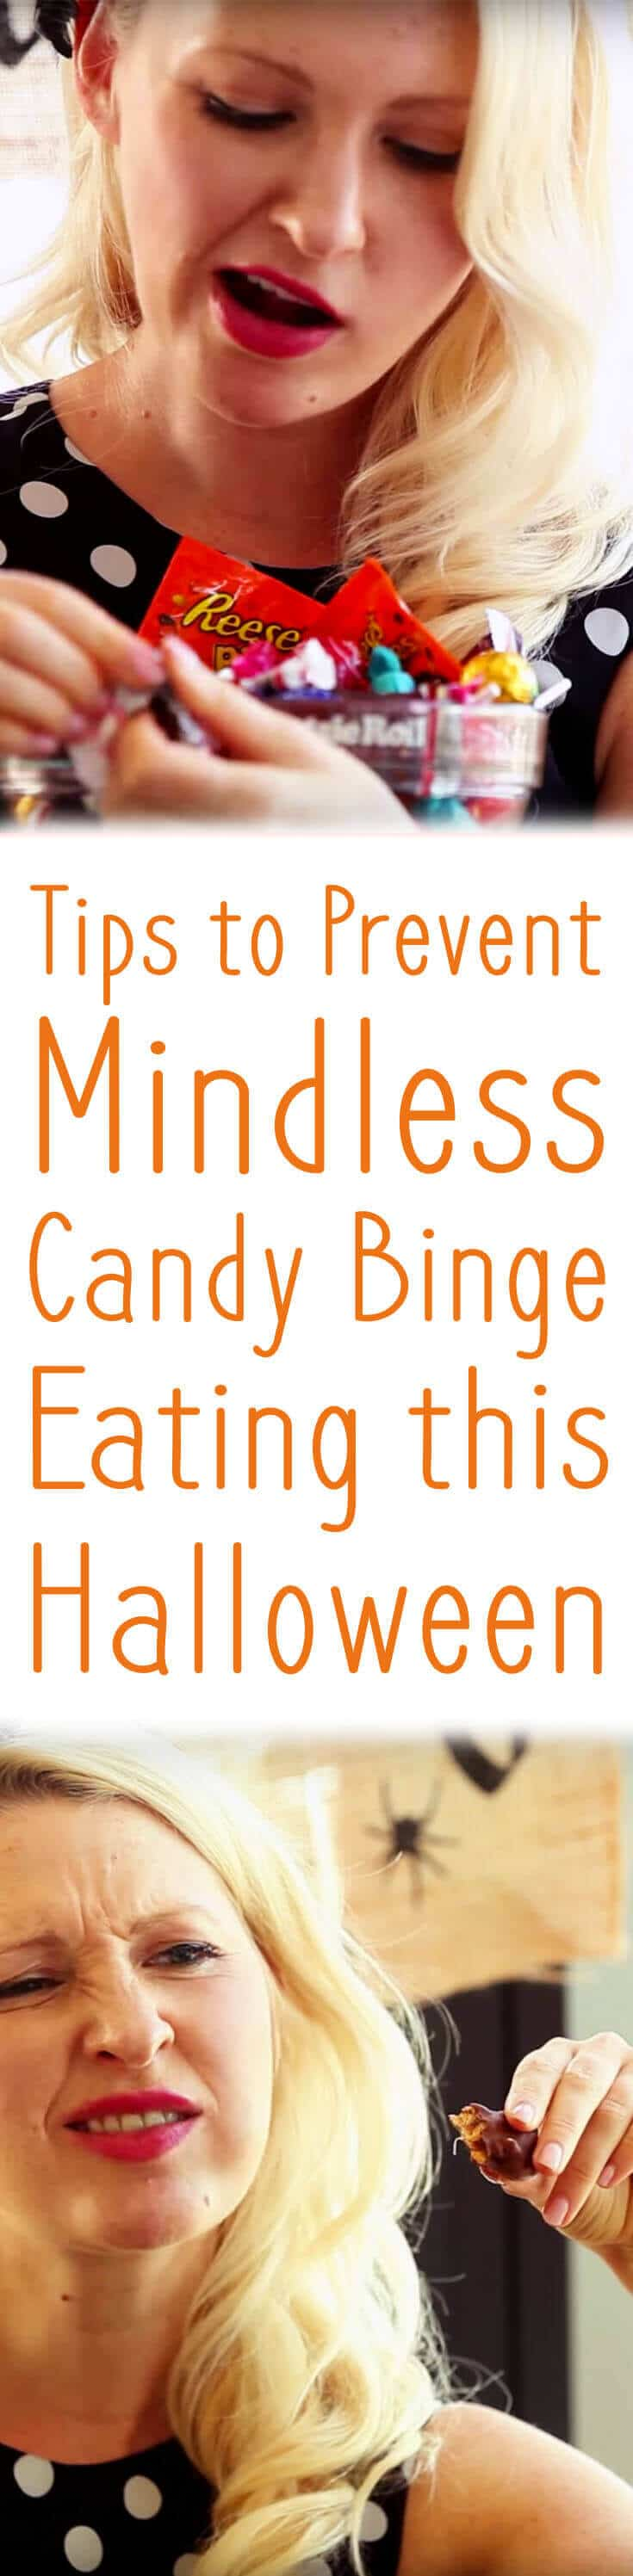 Check Out theses top tips to prevent yourself from binge eating candy this Halloween!